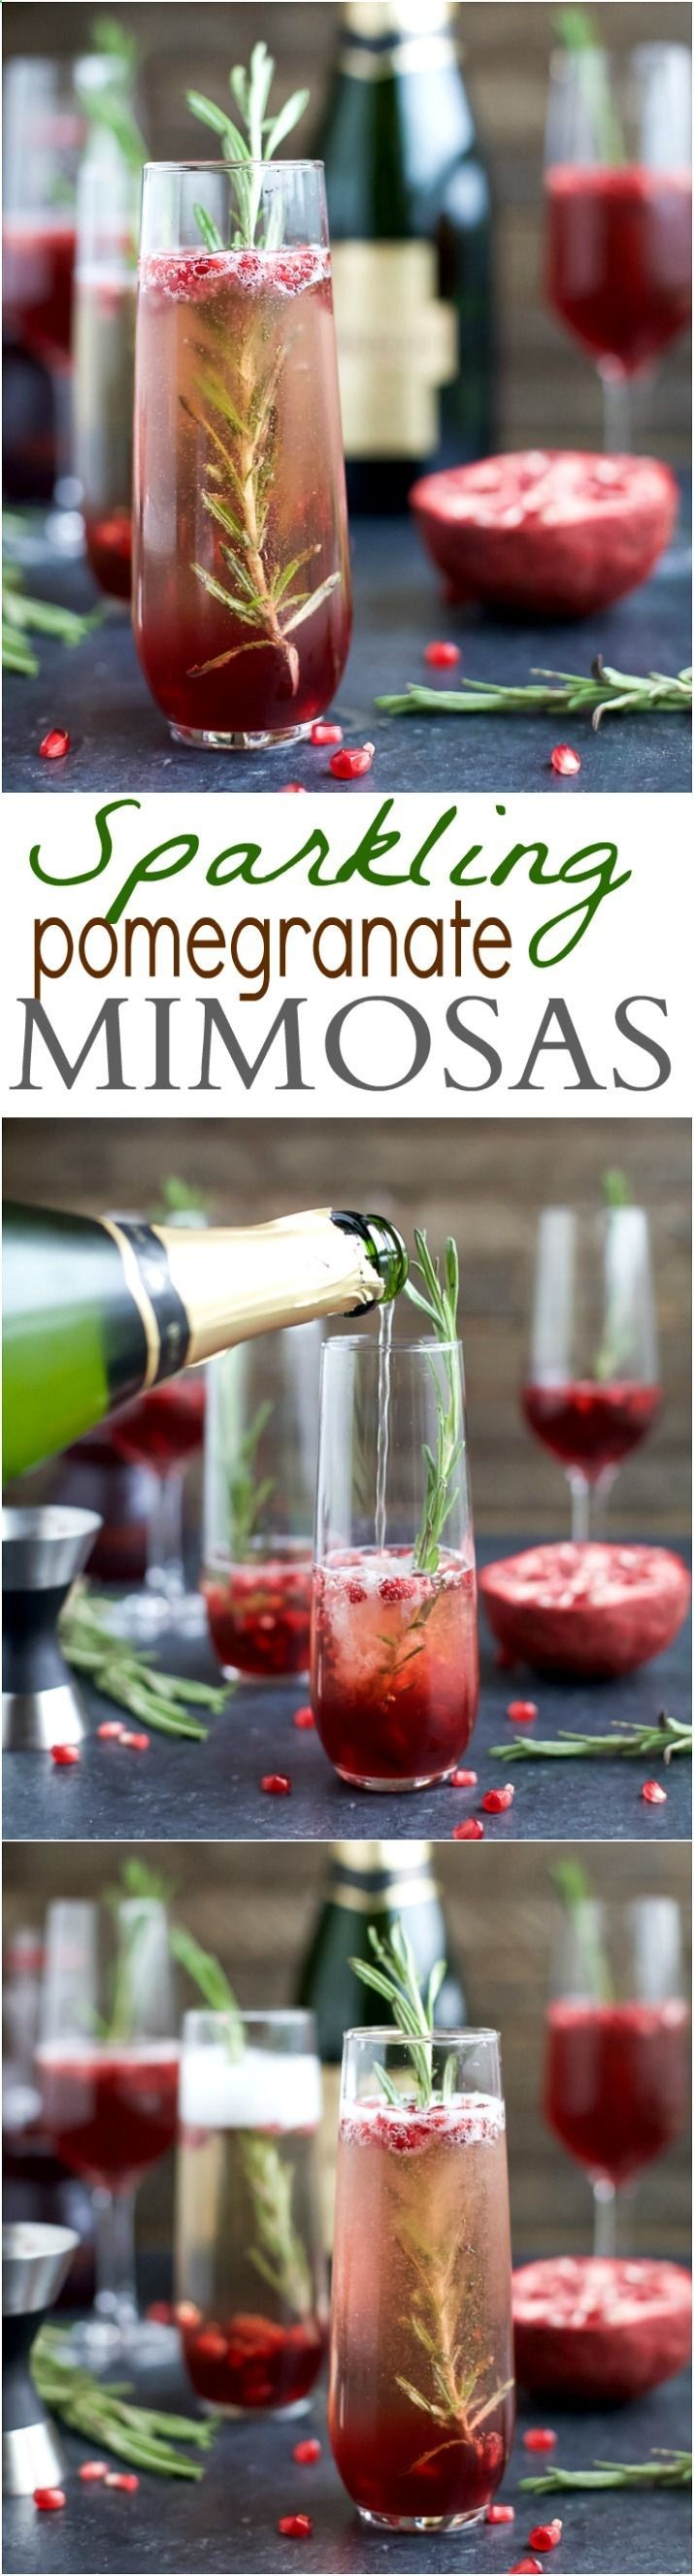 4 Ingredient Sparkling Pomegranate Mimosas are a fun cocktail to start your weekend with! Perfect for the holidays, great for brunch or a girls weekend! | joyfulhealthyeats...